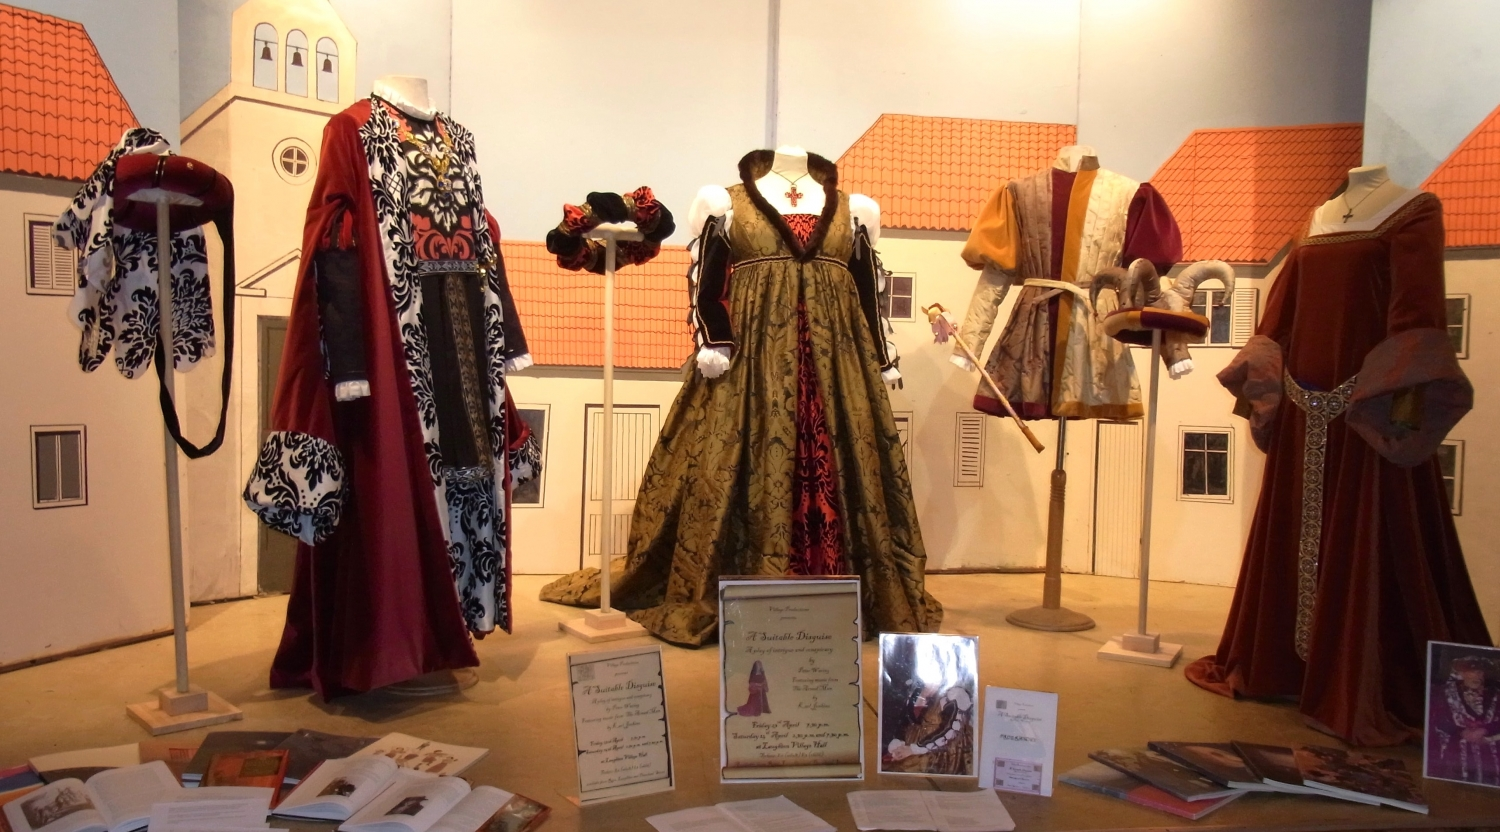 Theatre costume and evening wear